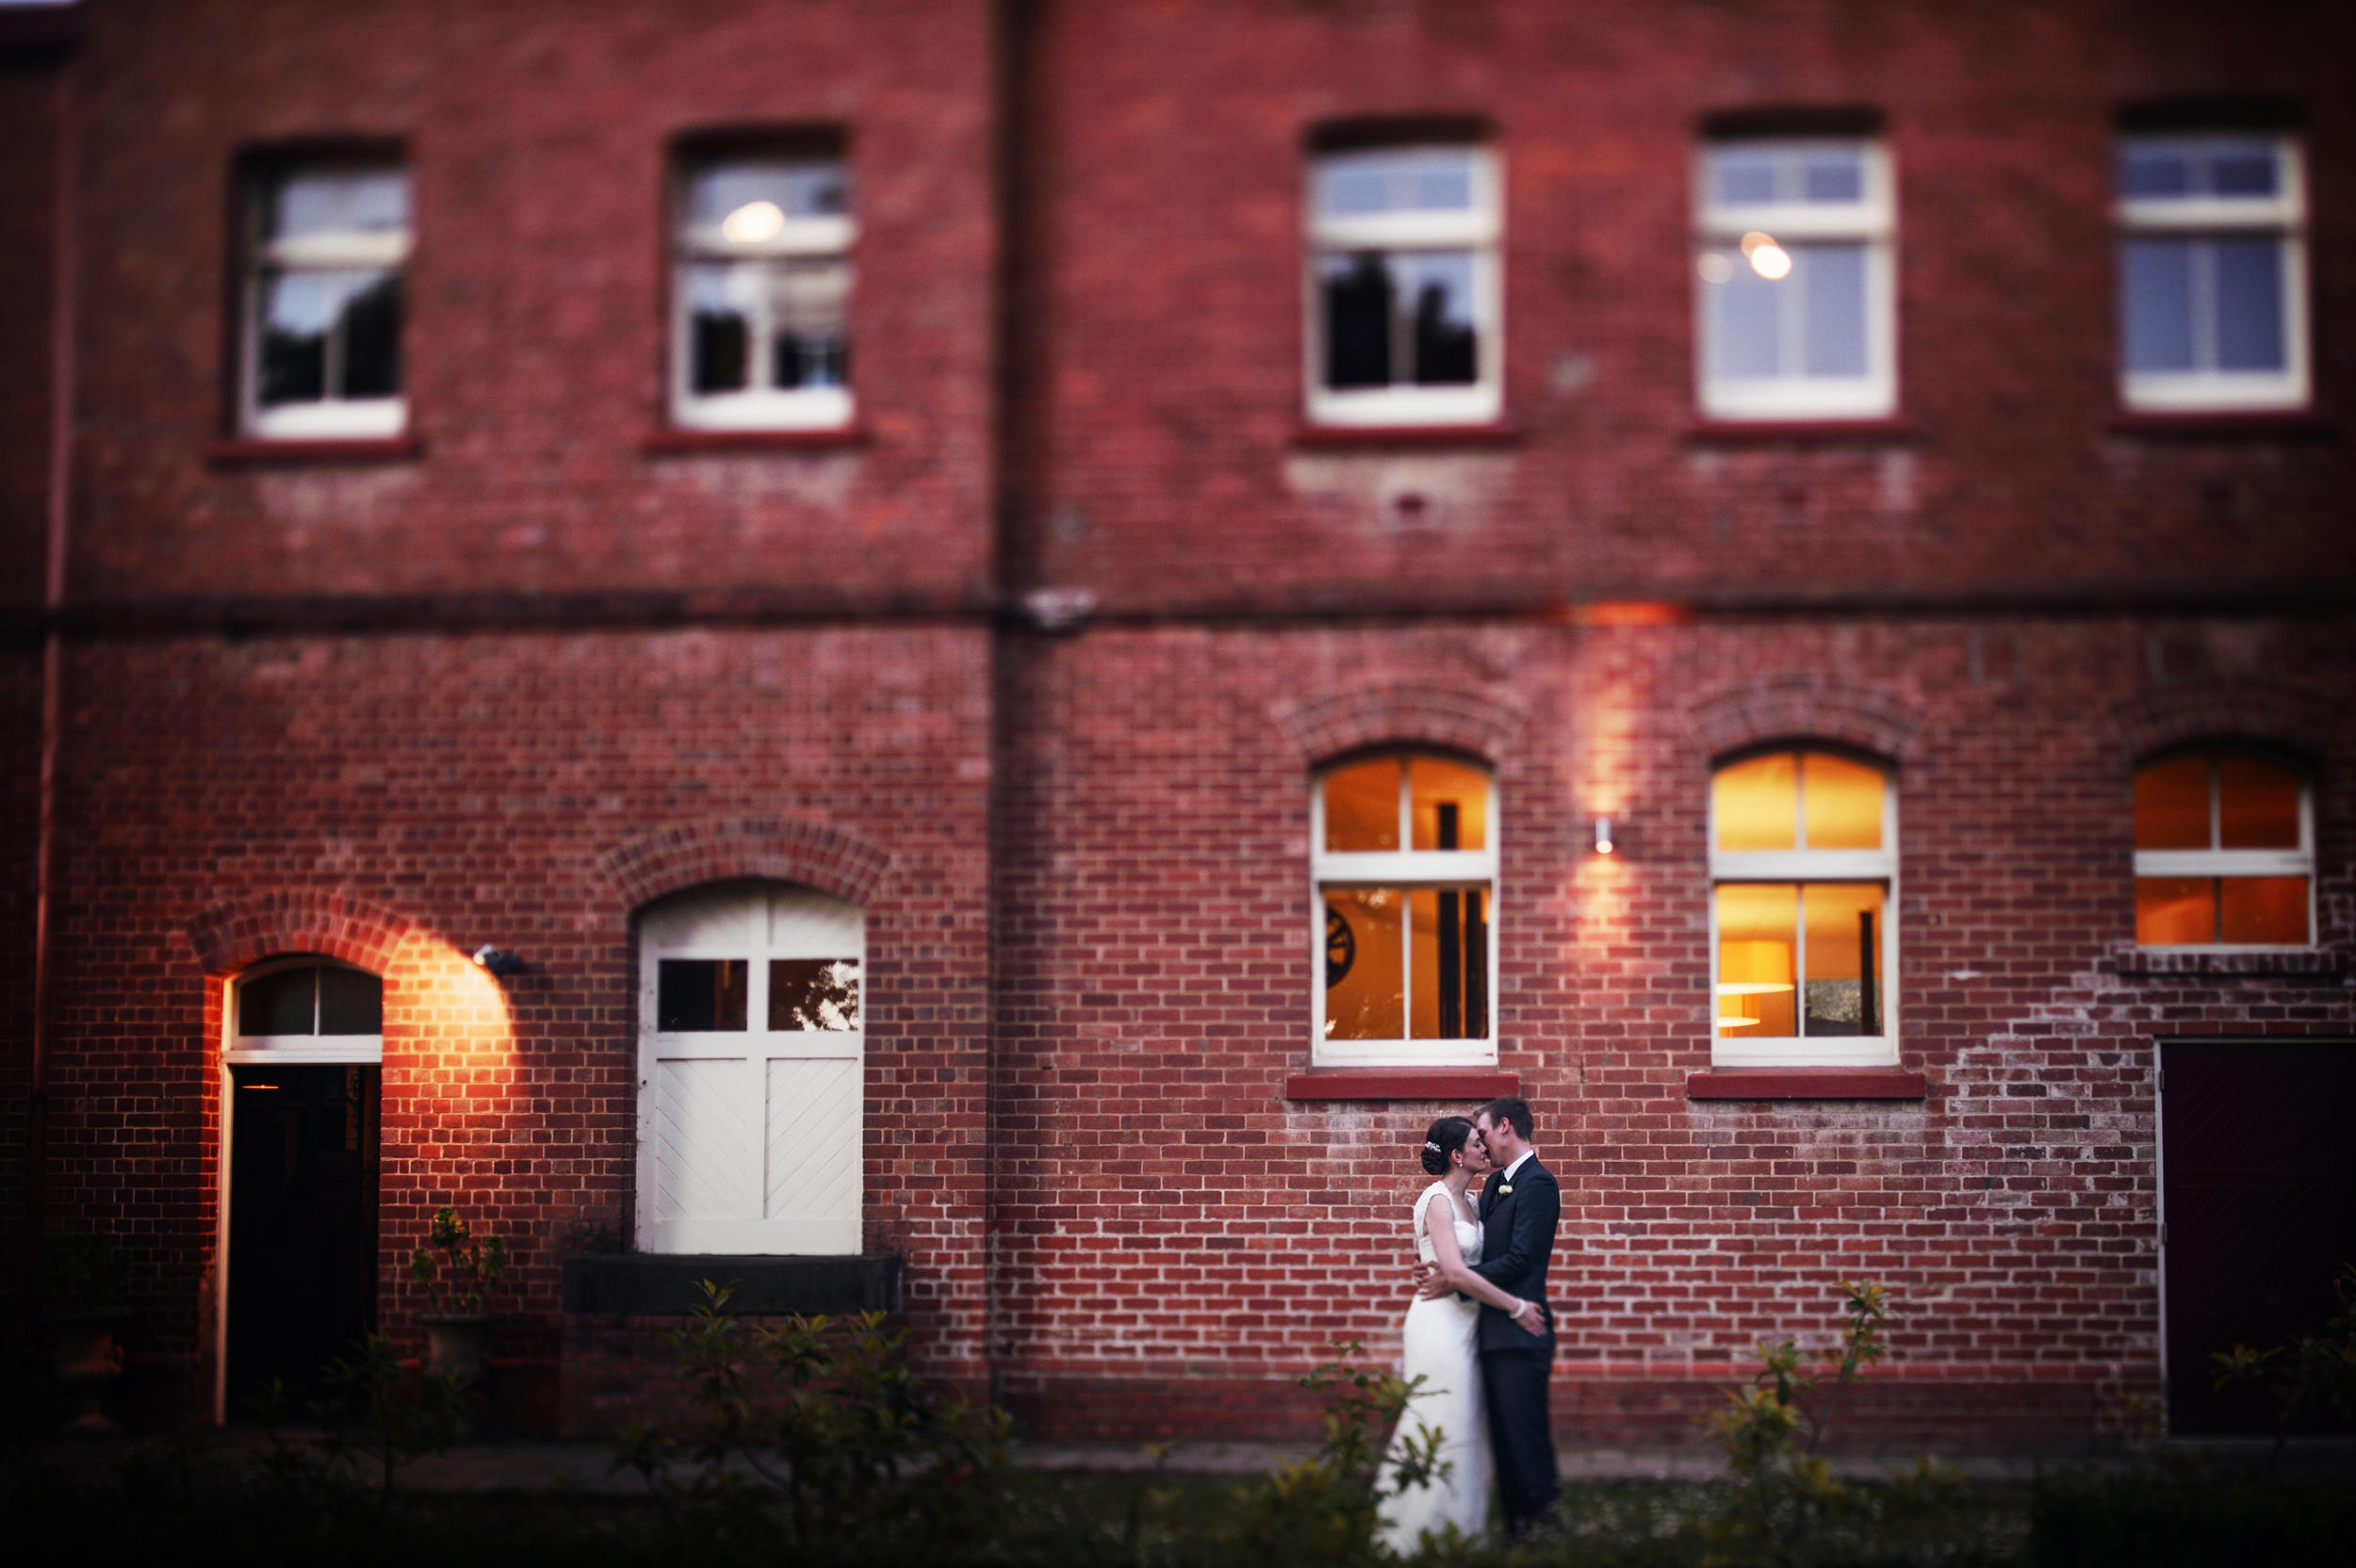 euroa_butter_factory_wedding_photography_42.jpg